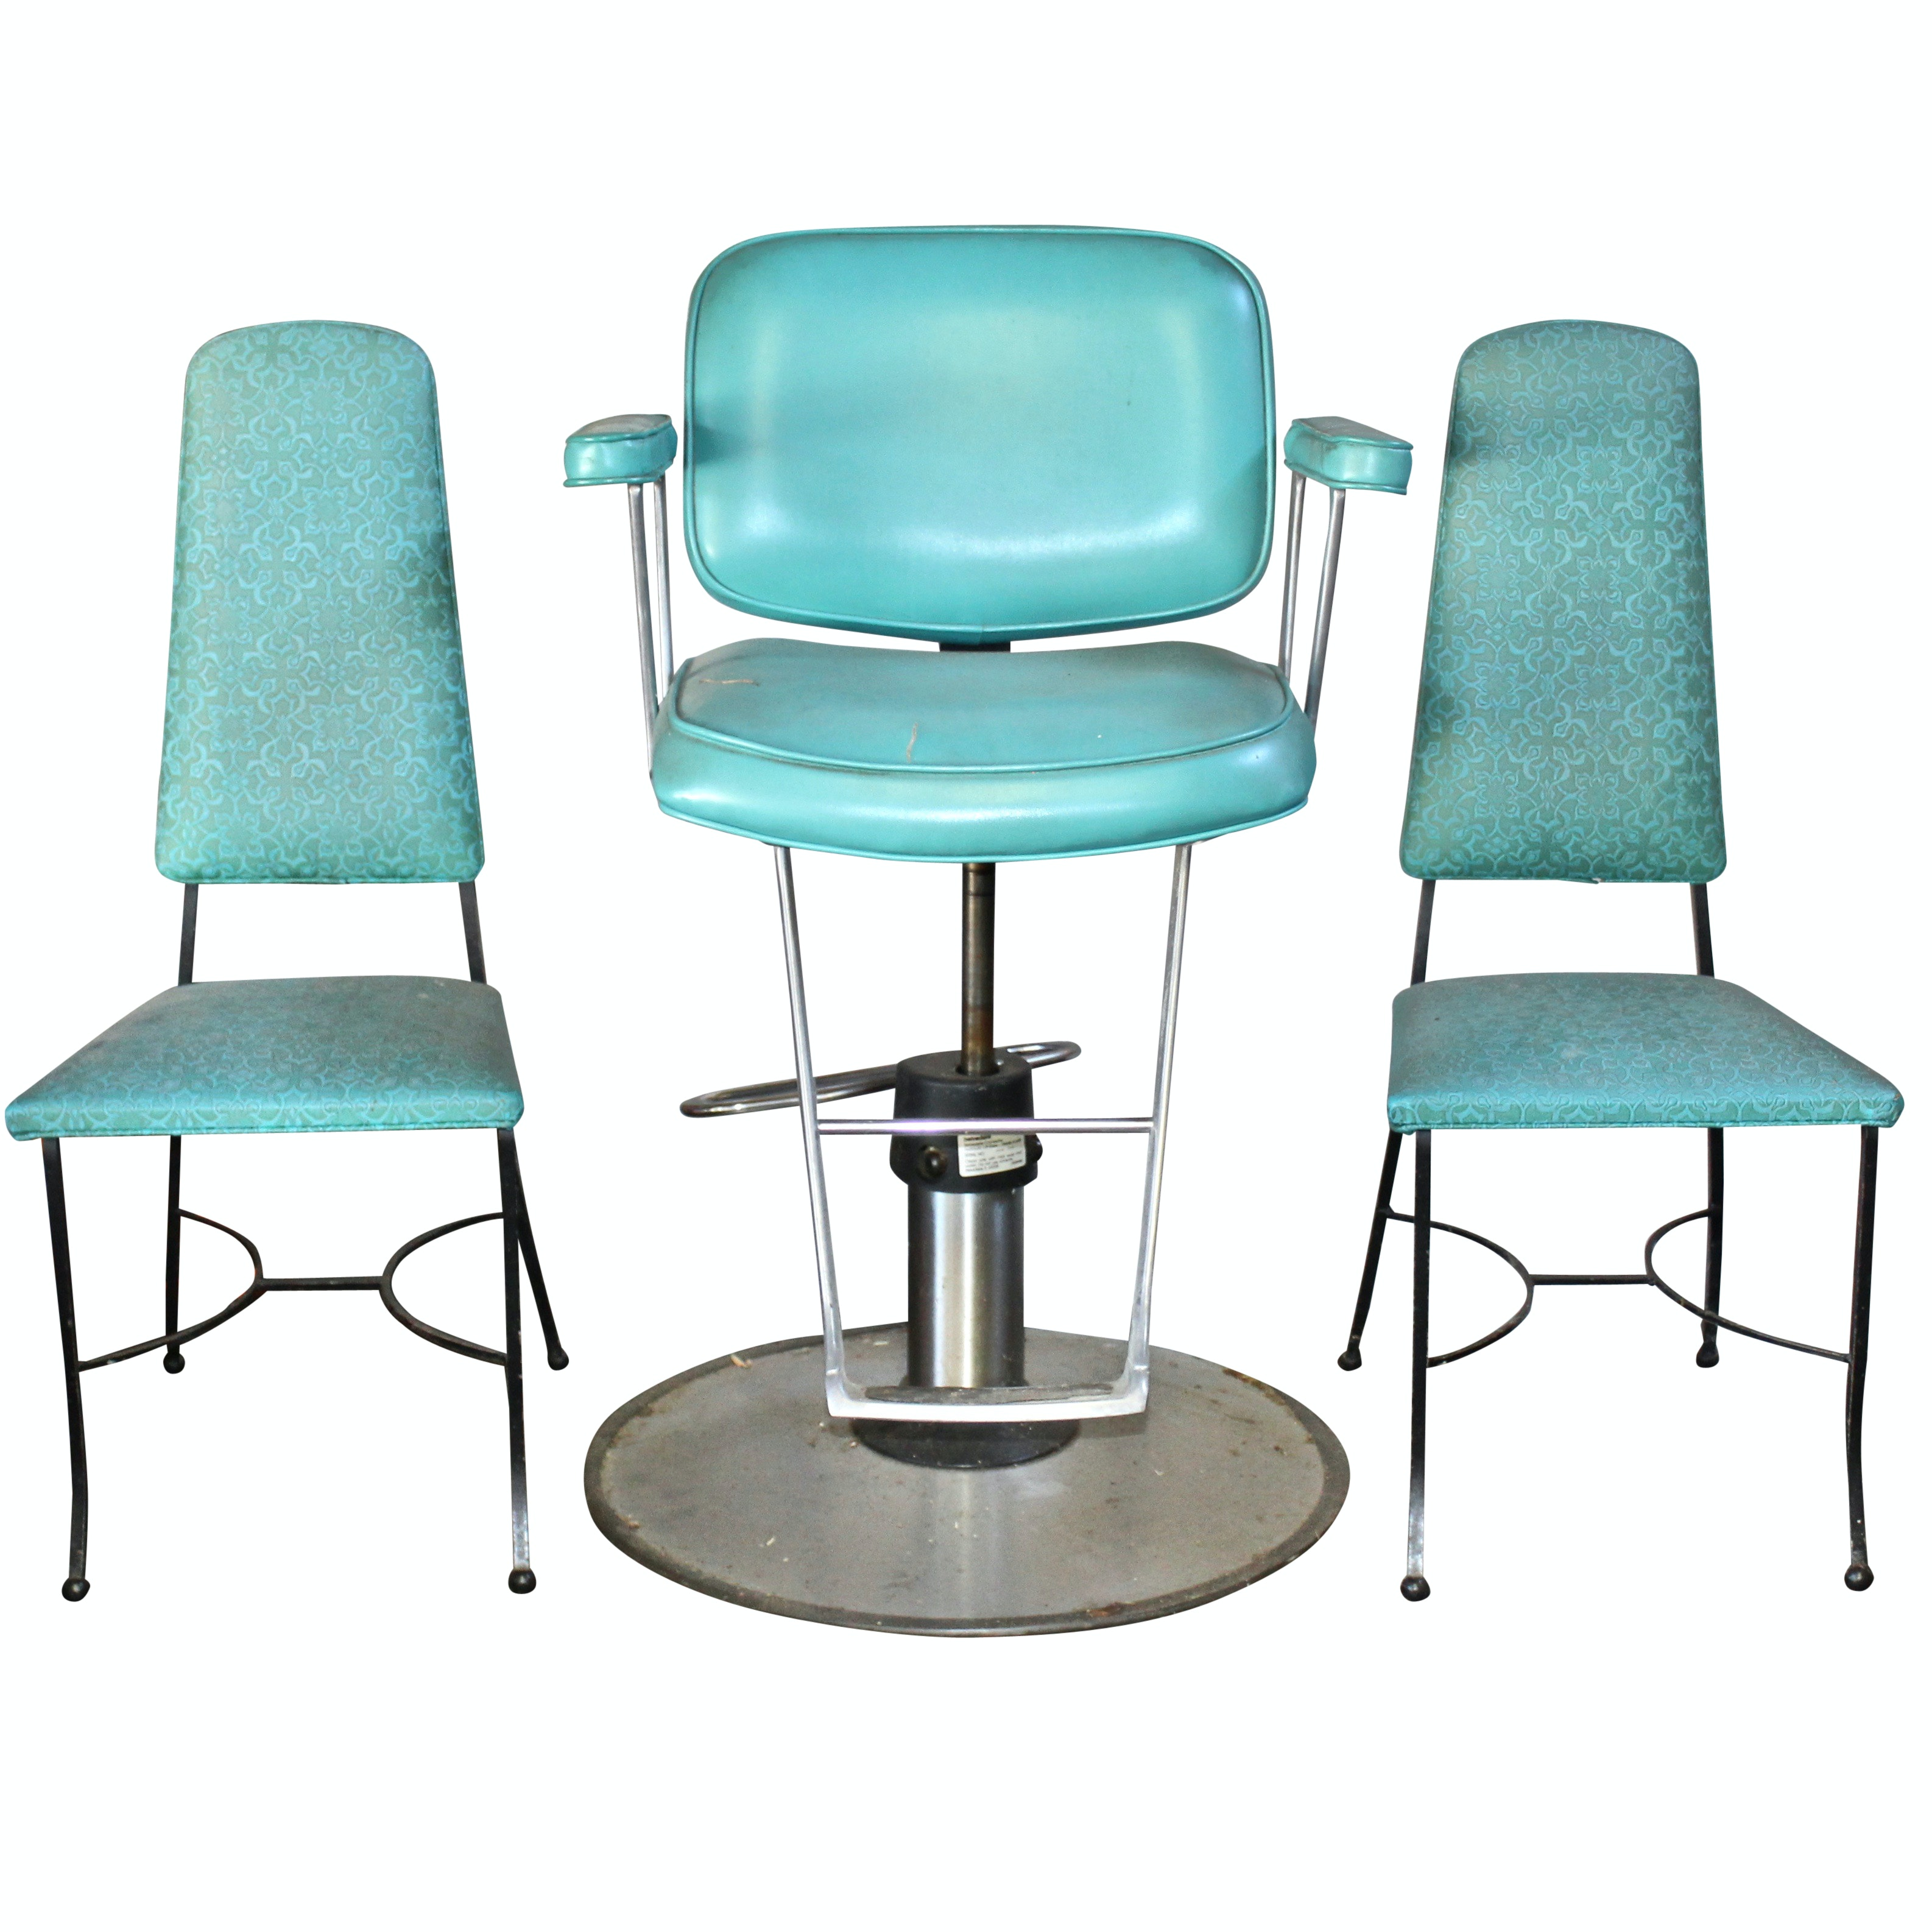 Vintage Hair Salon Chair and Waiting Chairs